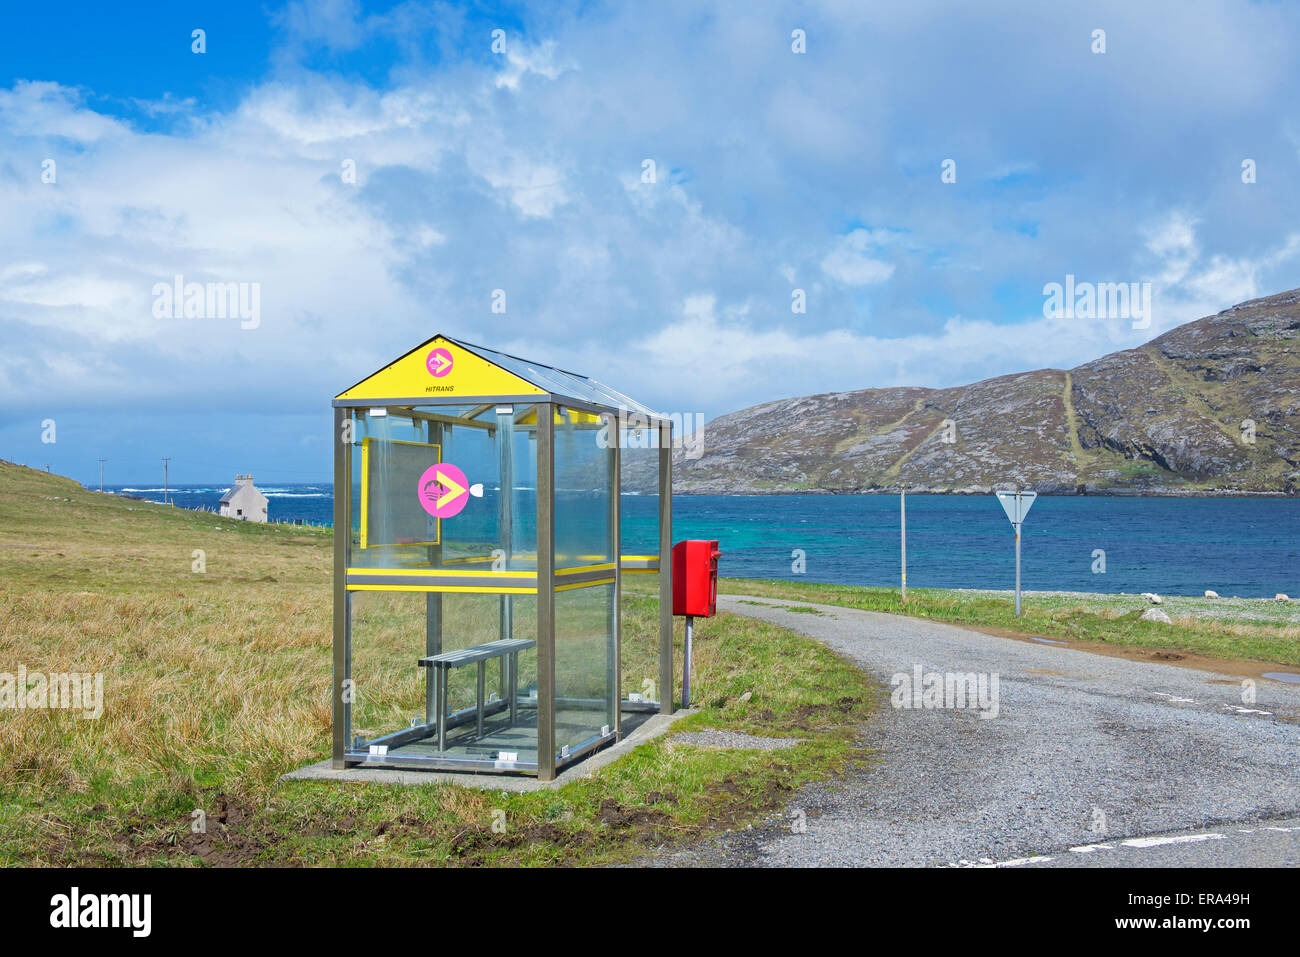 Bus stop on the island of Vatersay, Isle of Barra, Outer Hebrides, Scotland UK - Stock Image